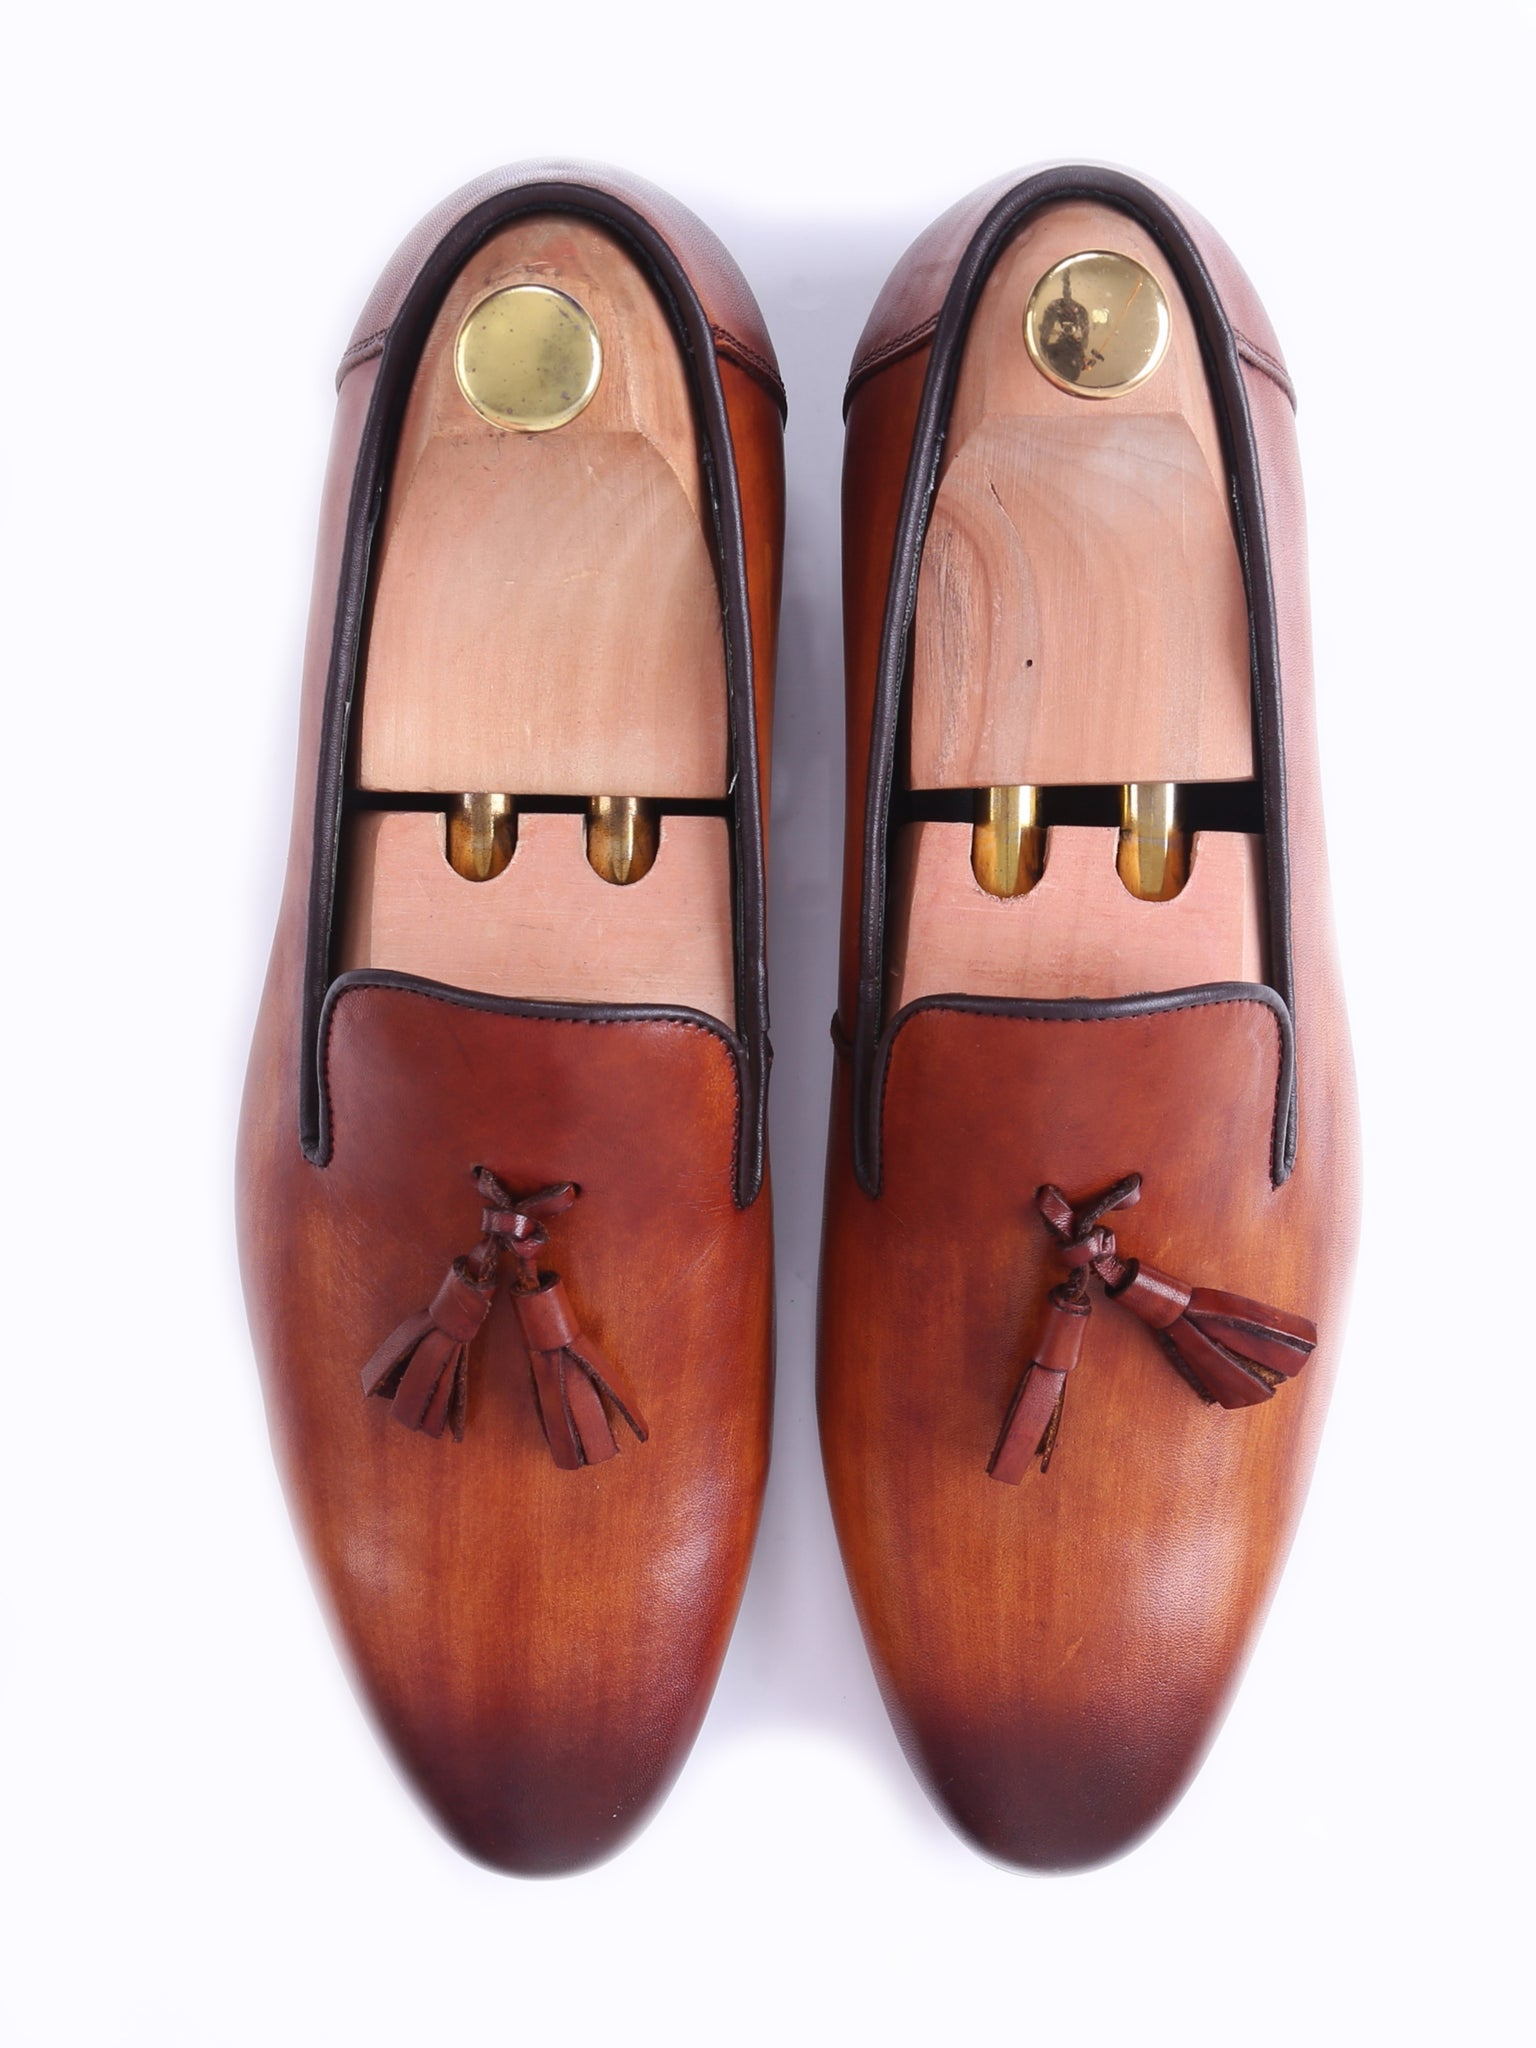 Shoes Loafer Slipper - Cognac Tan (Hand Painted Patina)